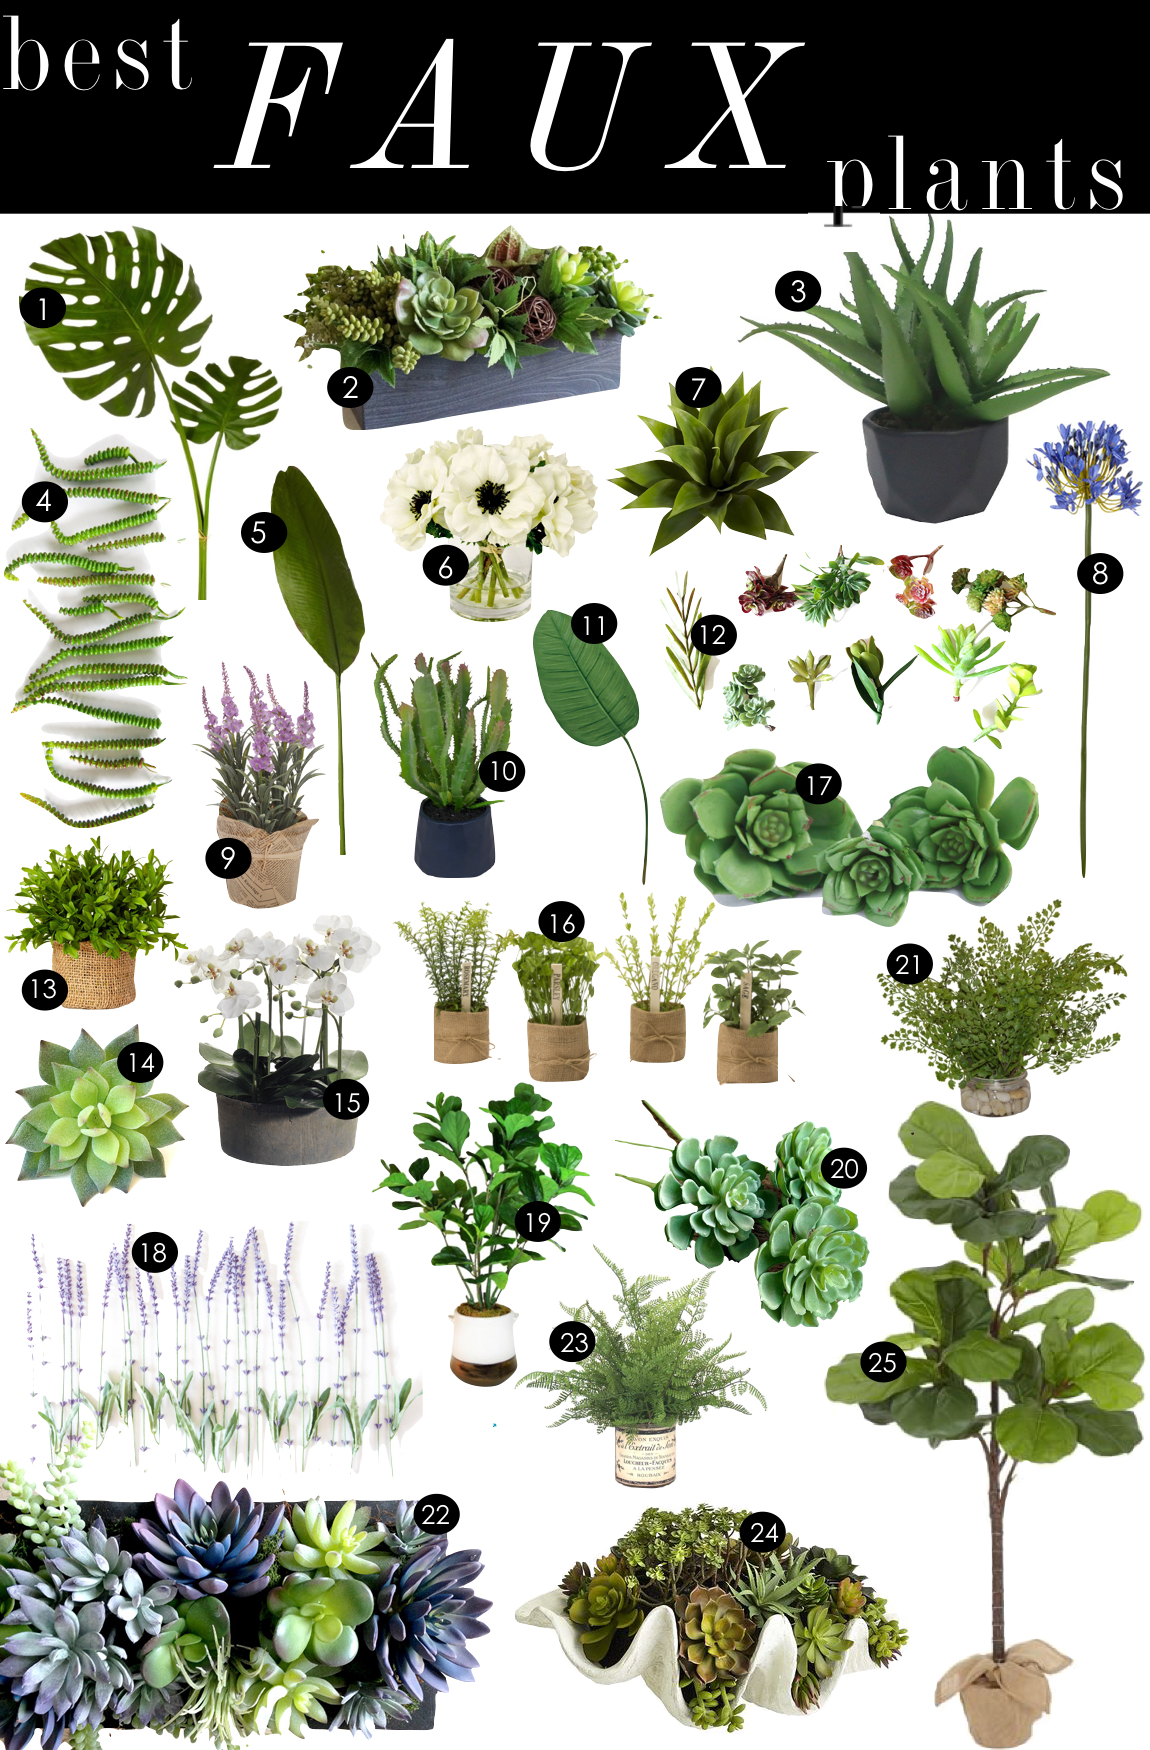 Best Faux Plants  |  Kiki's List